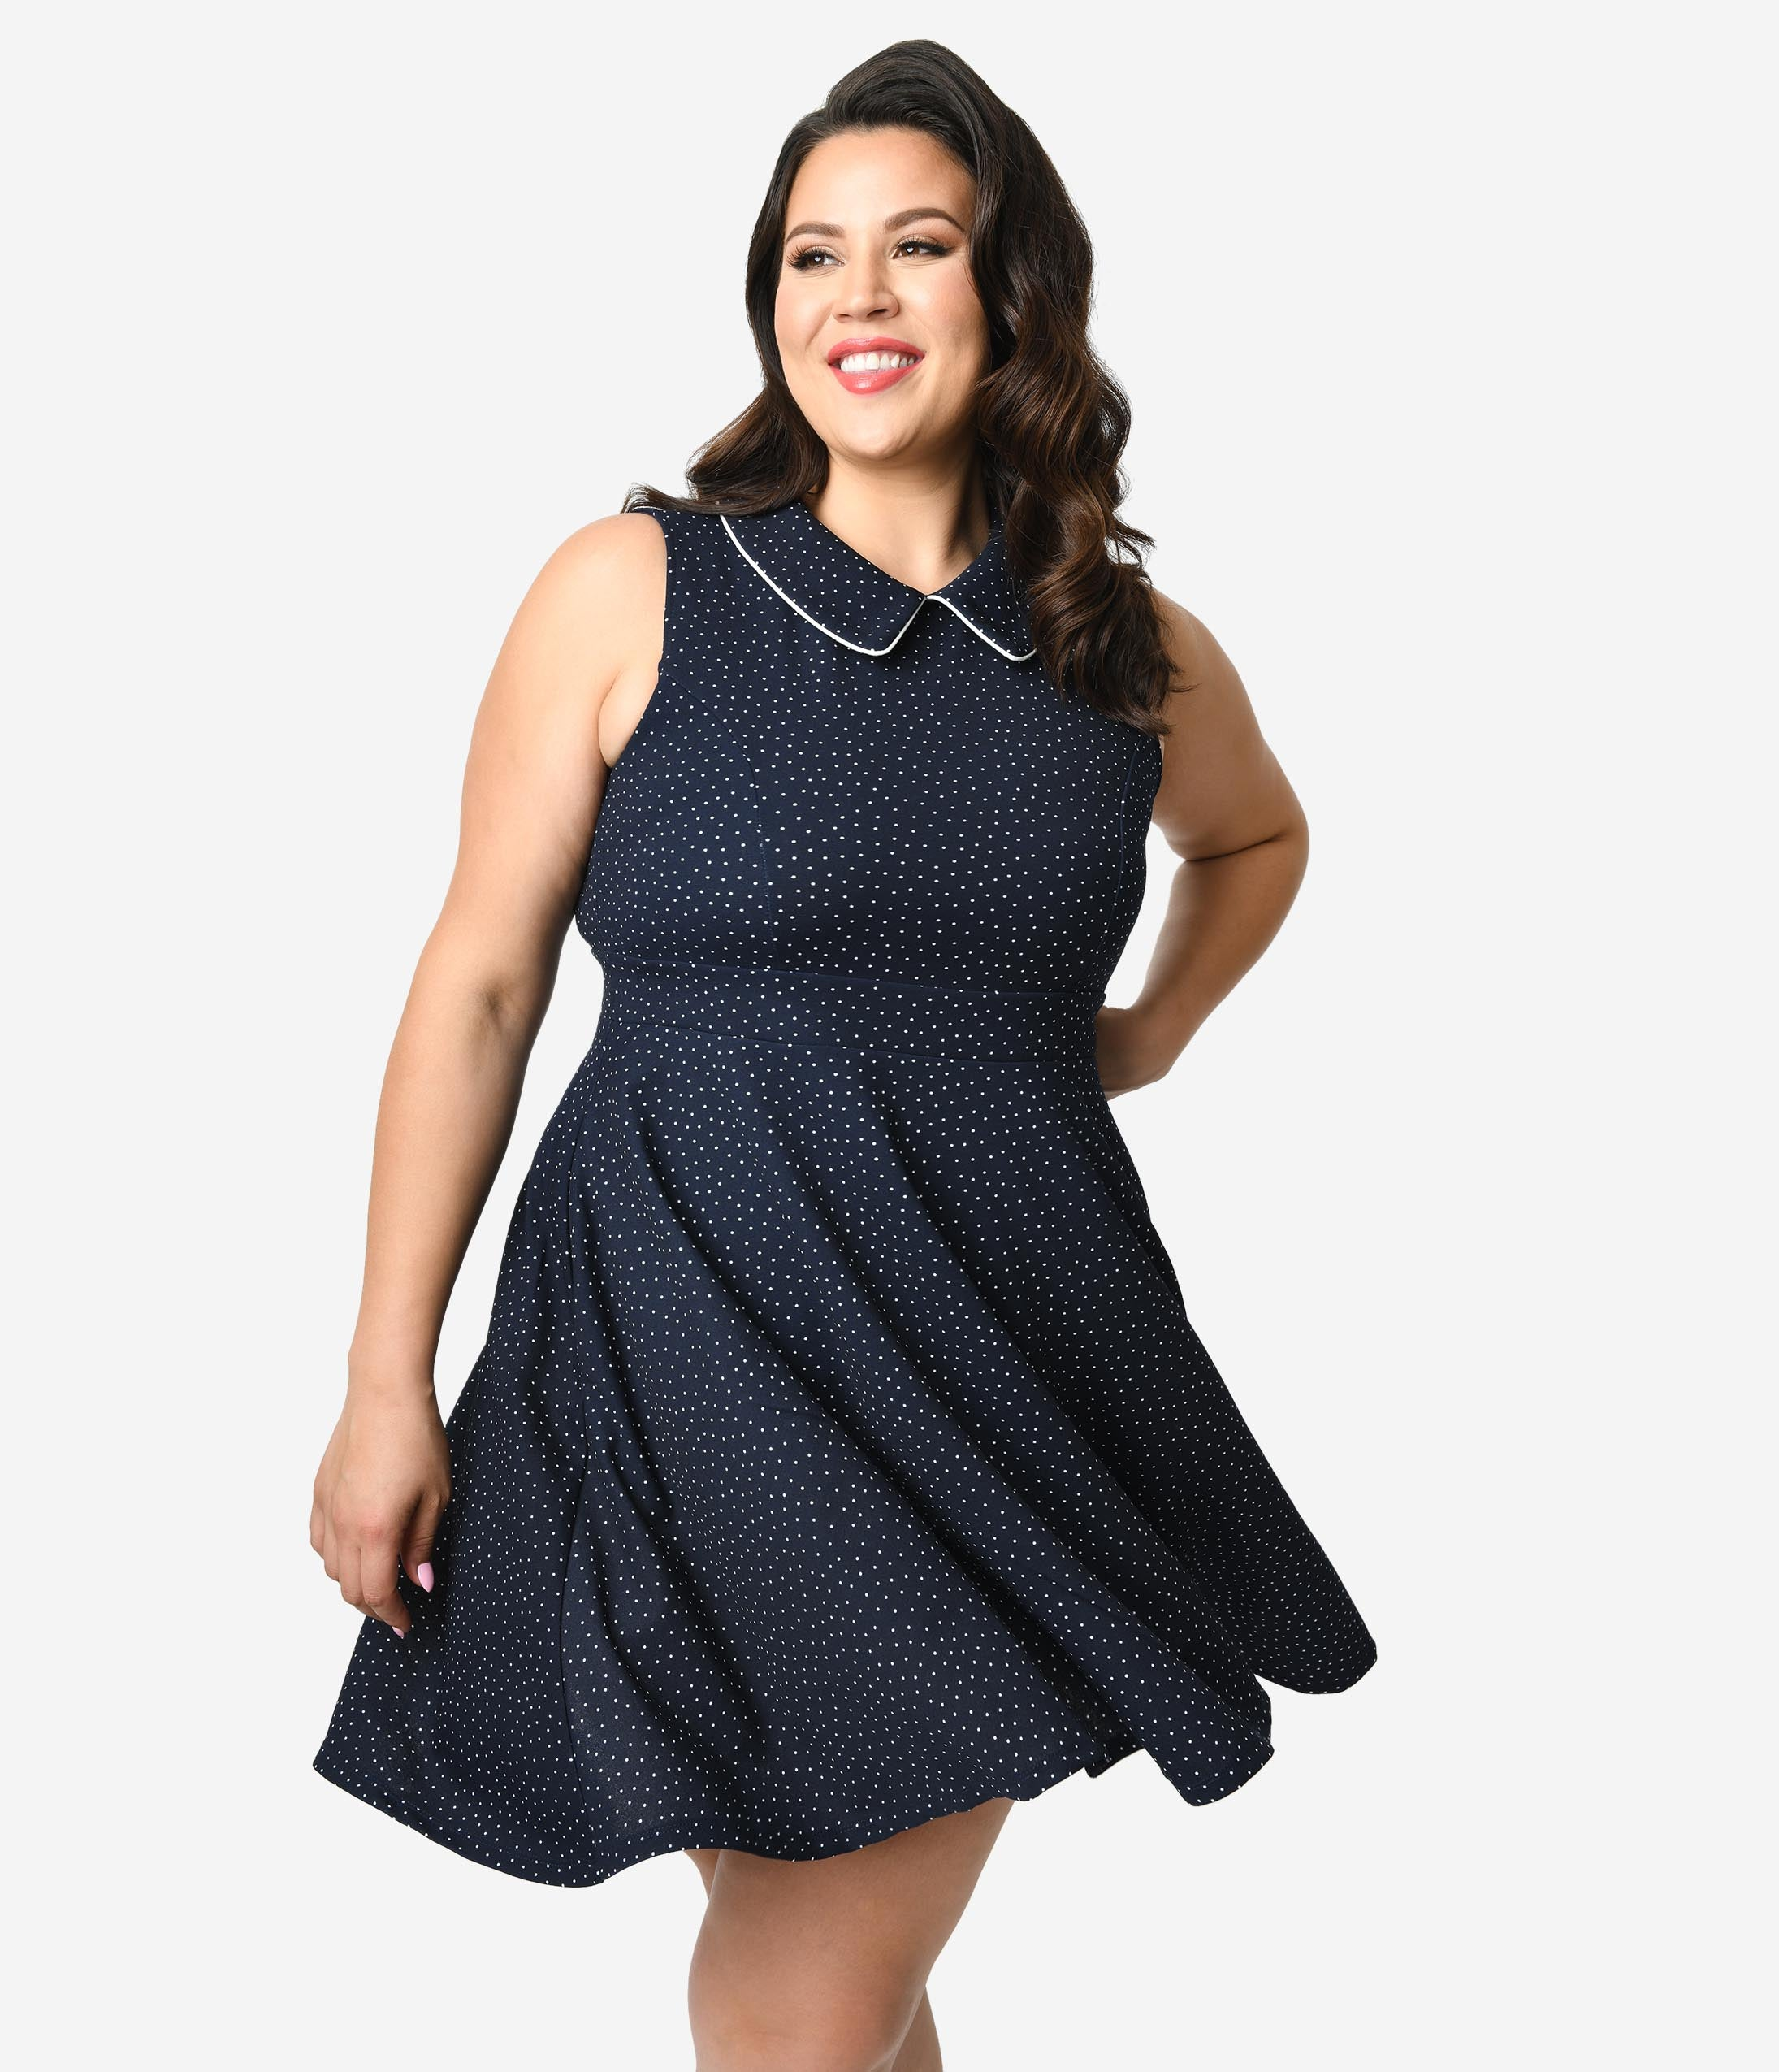 60s 70s Plus Size Dresses, Clothing, Costumes Smak Parlour Plus Size 1960S Style Navy  White Pin Dot Female Forward Sleeveless Fit  Flare Dress $68.00 AT vintagedancer.com